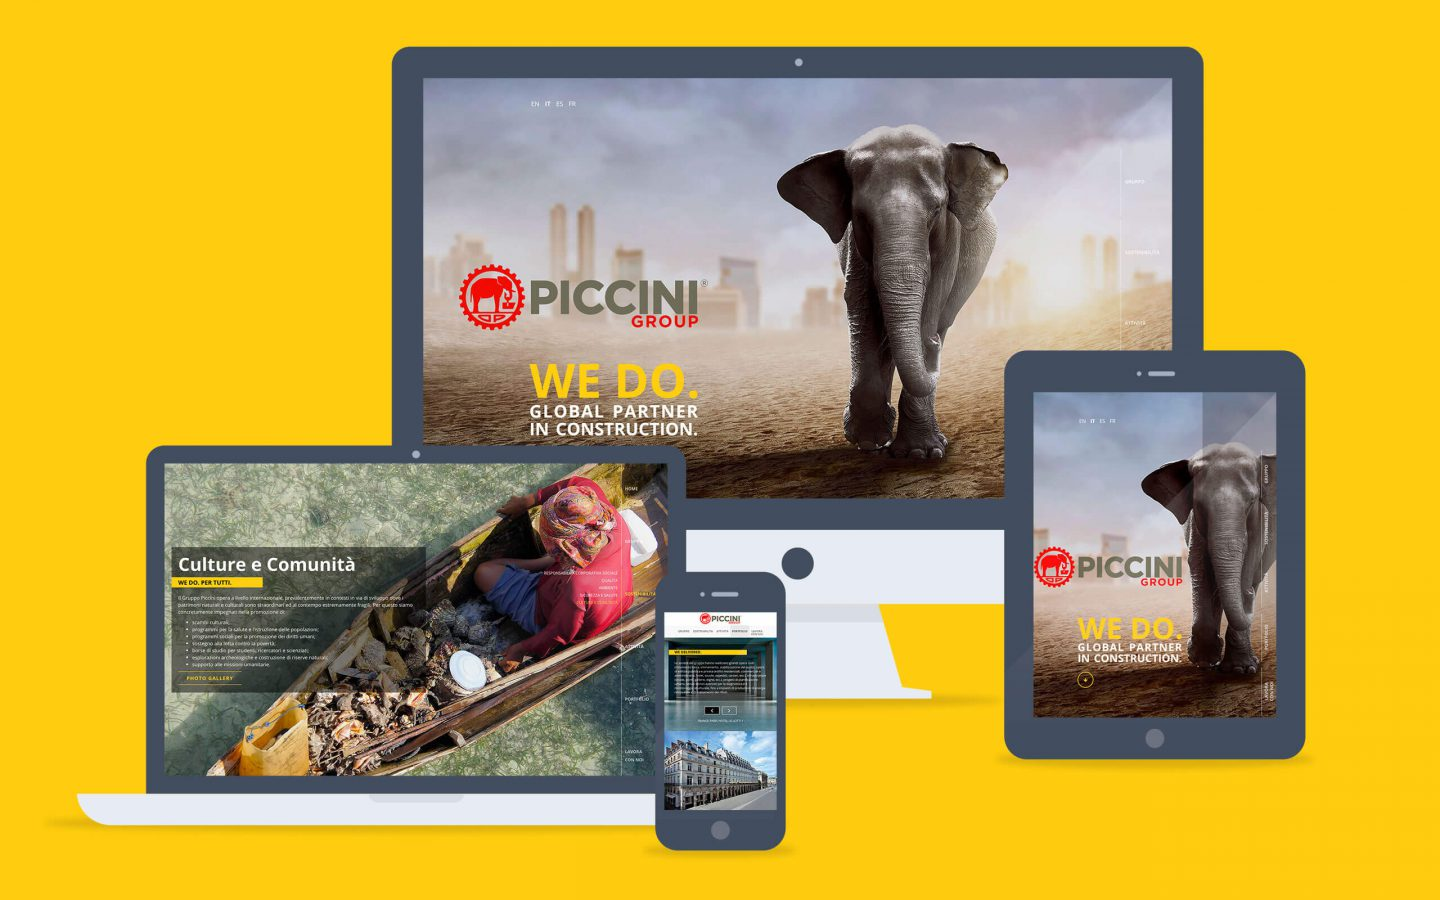 Piccini Group / web site - Fosforica